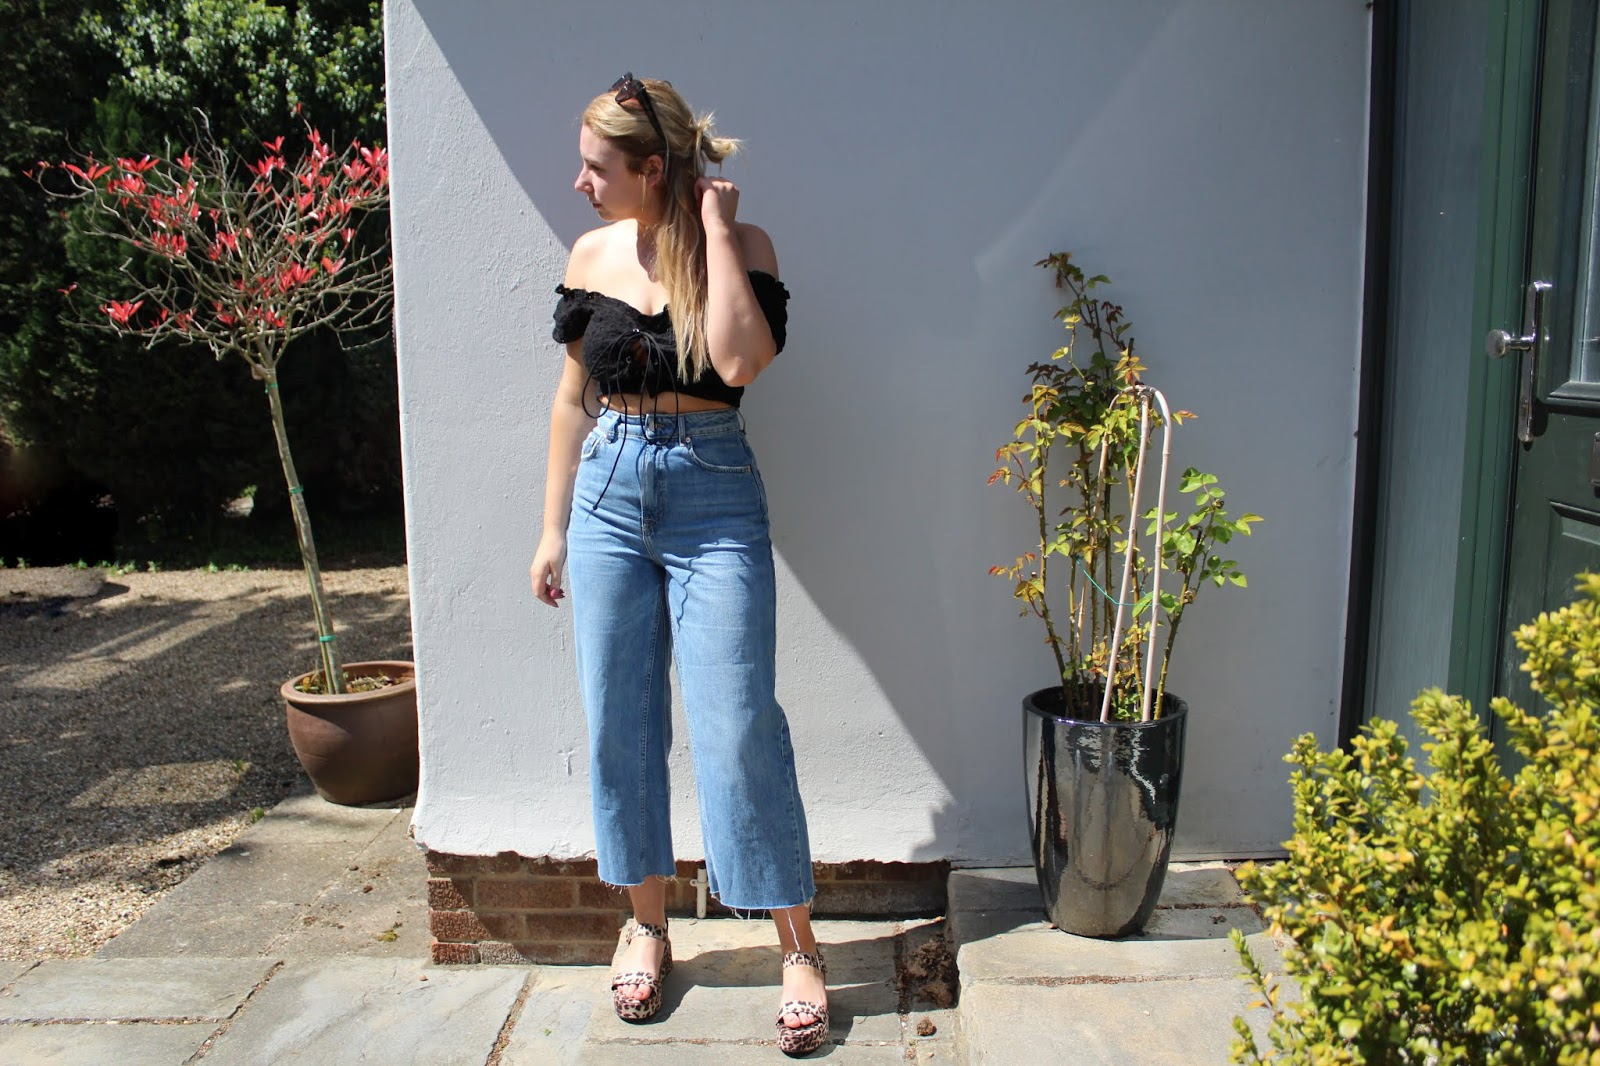 Outside against white wall wearing black top and jeans